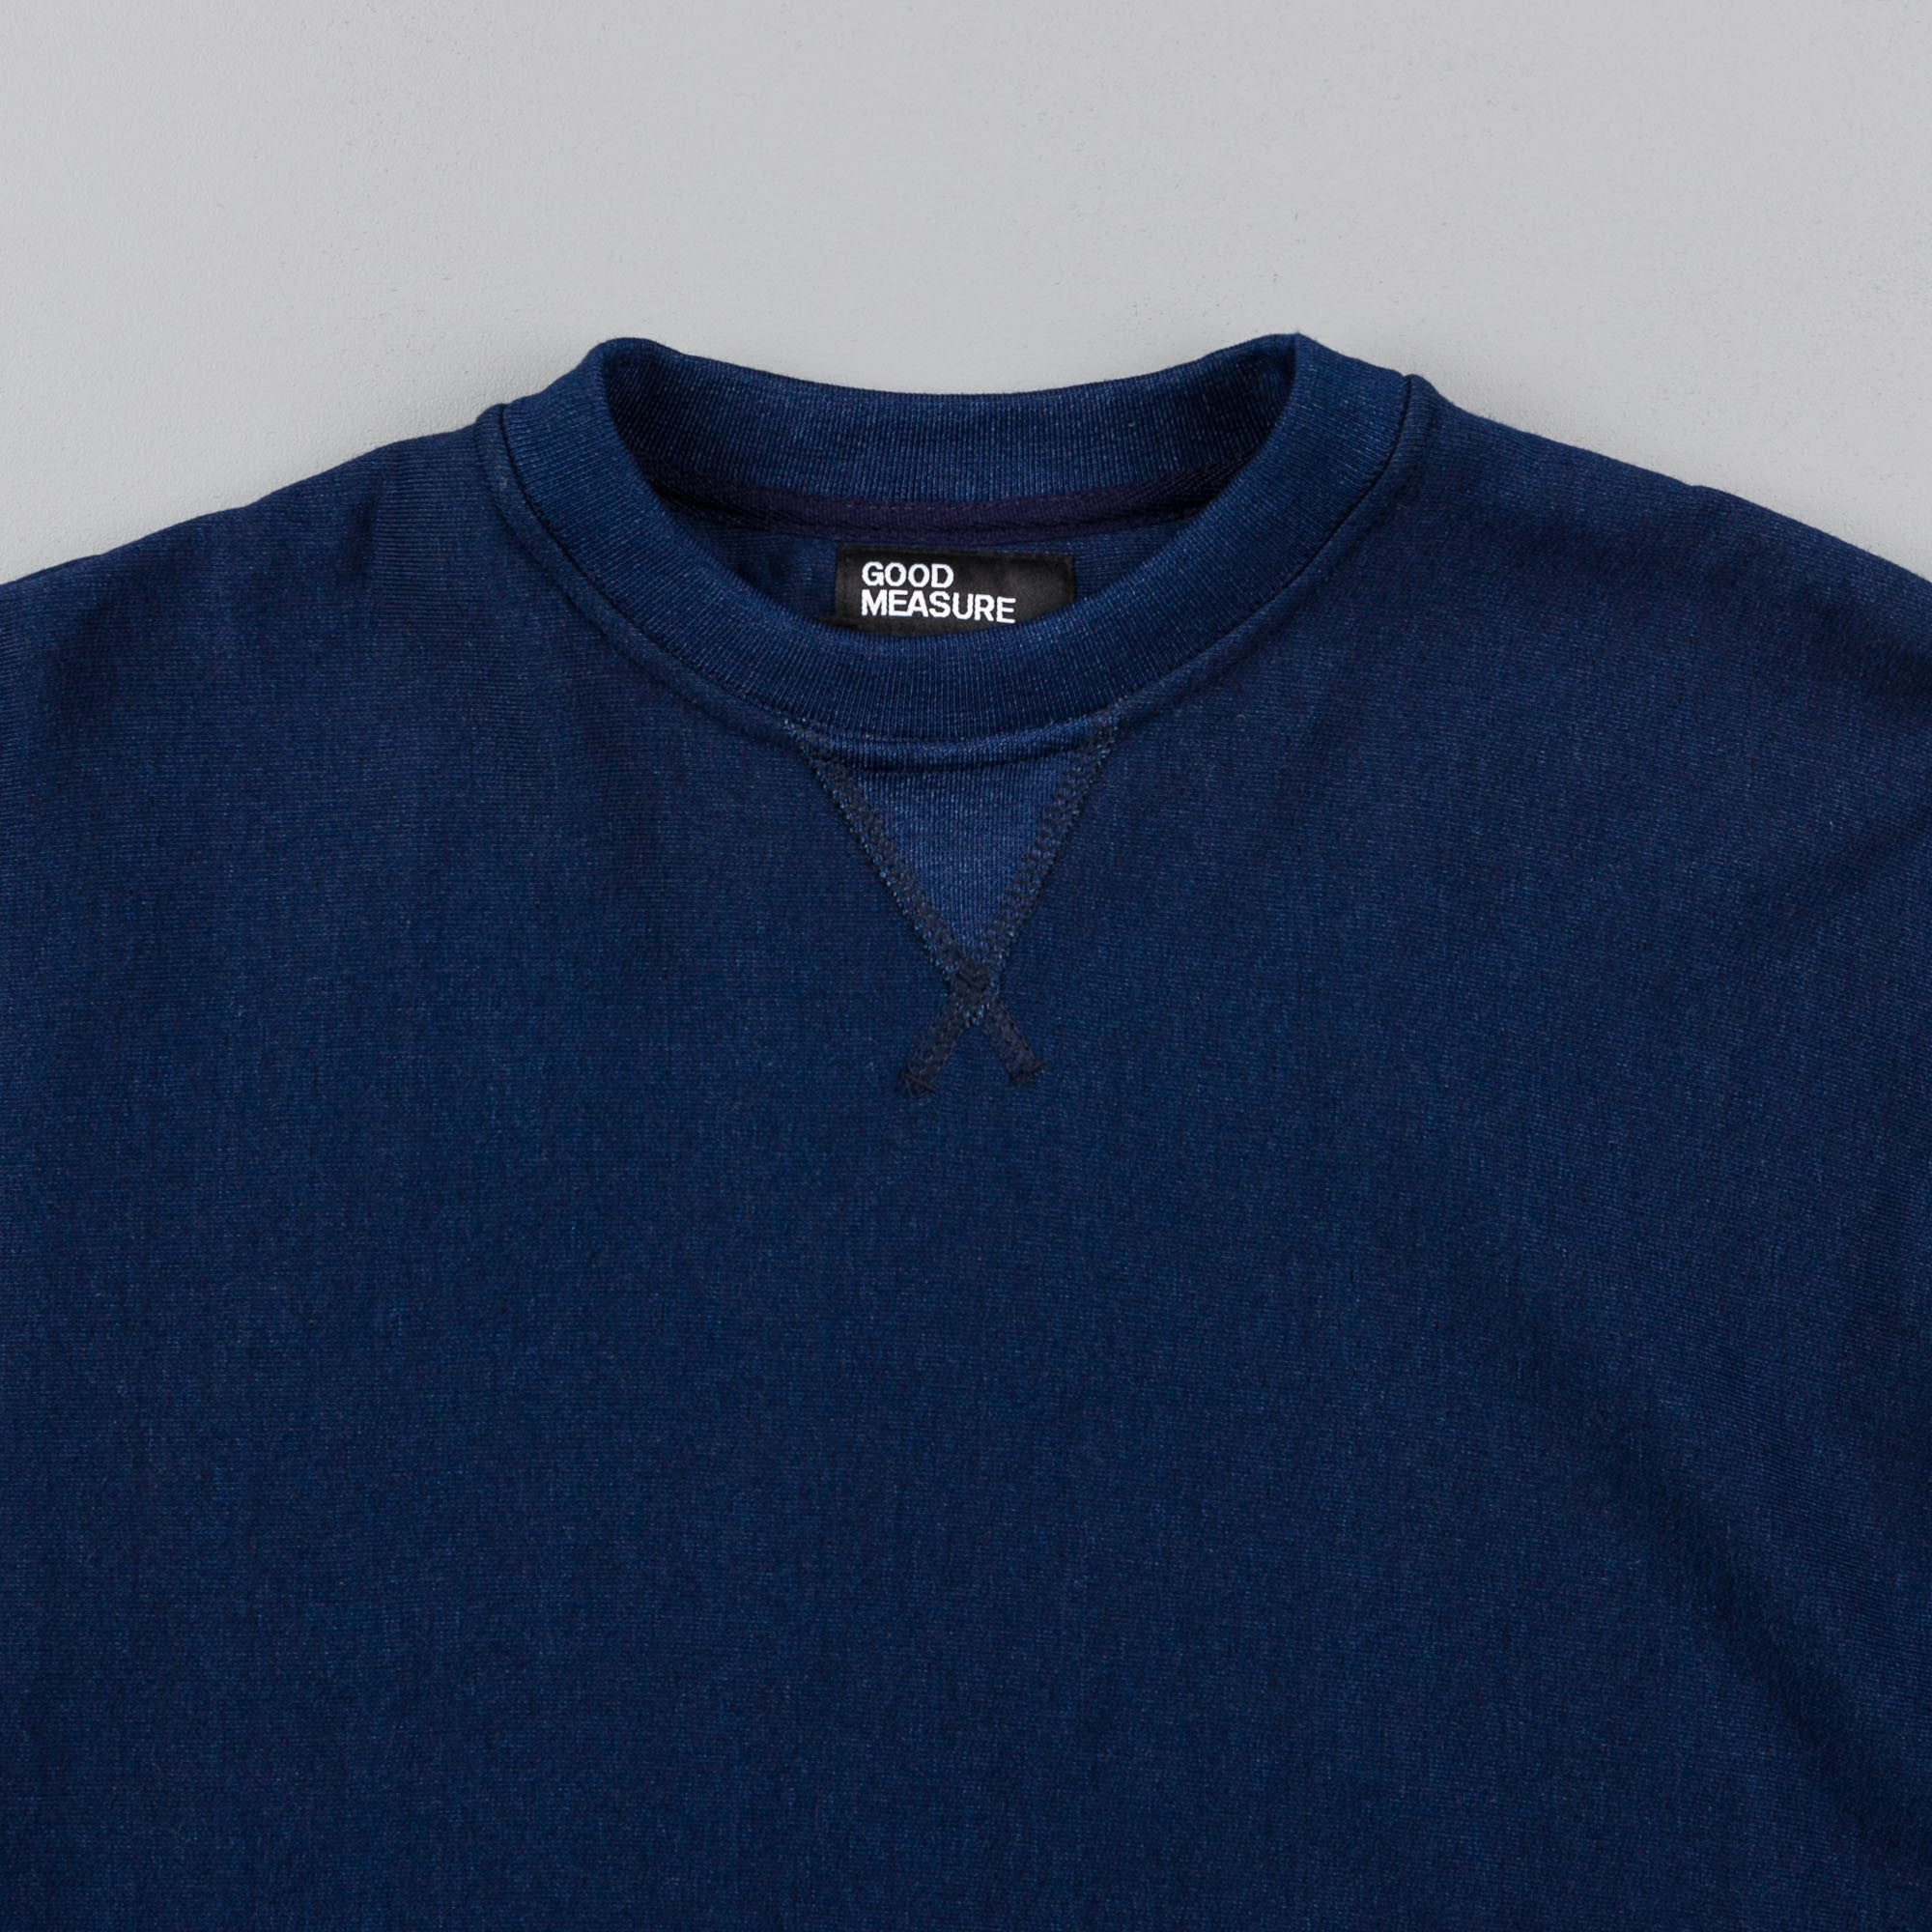 Good Measure M-21 Crewneck Sweatshirt - Indigo